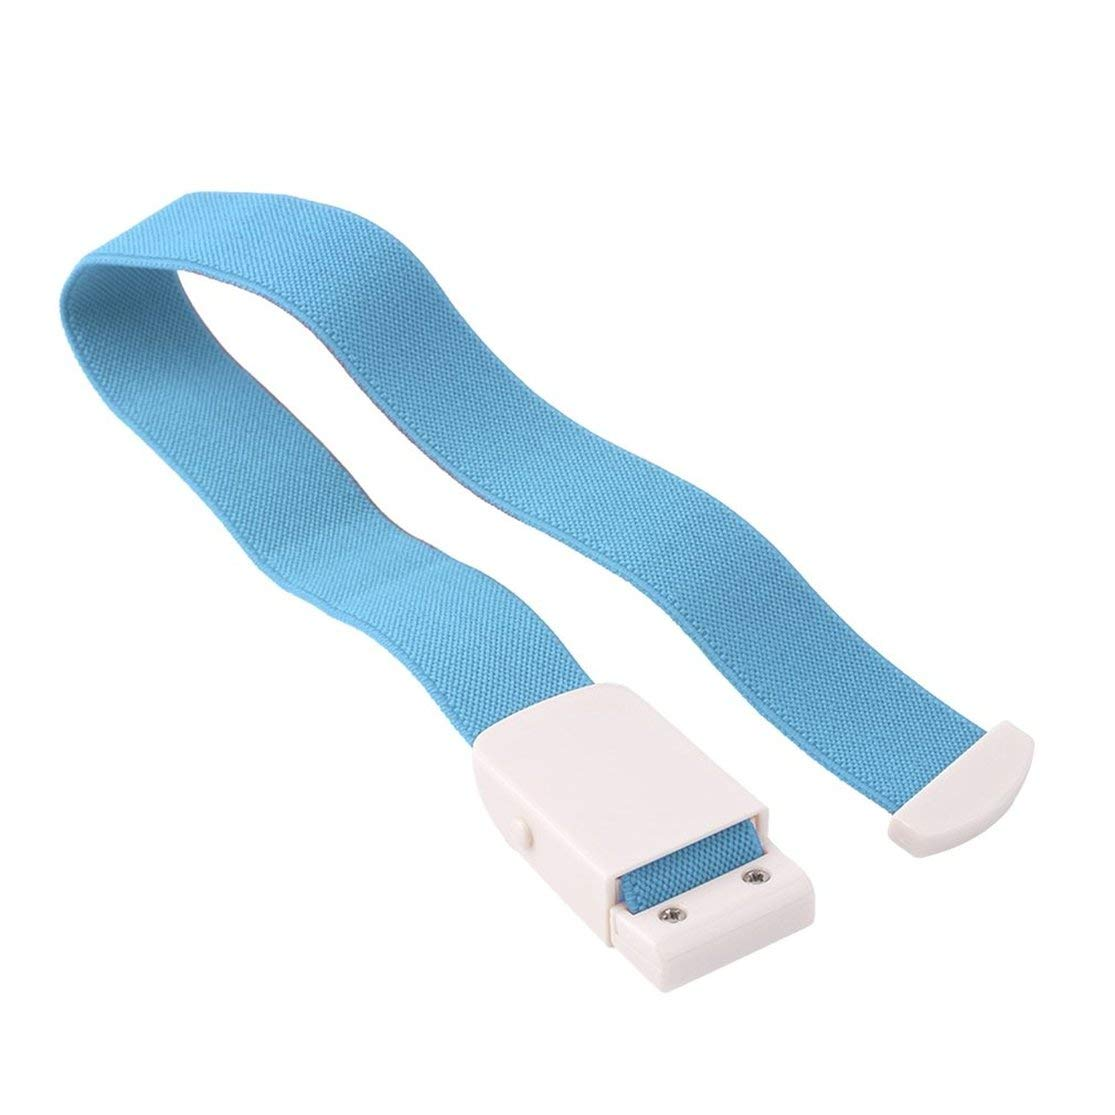 Plastic ABS Rescue Emergency Tourniquet Plastic Buckle Quick Slow Release Medical Paramedic for Outdoor Sport